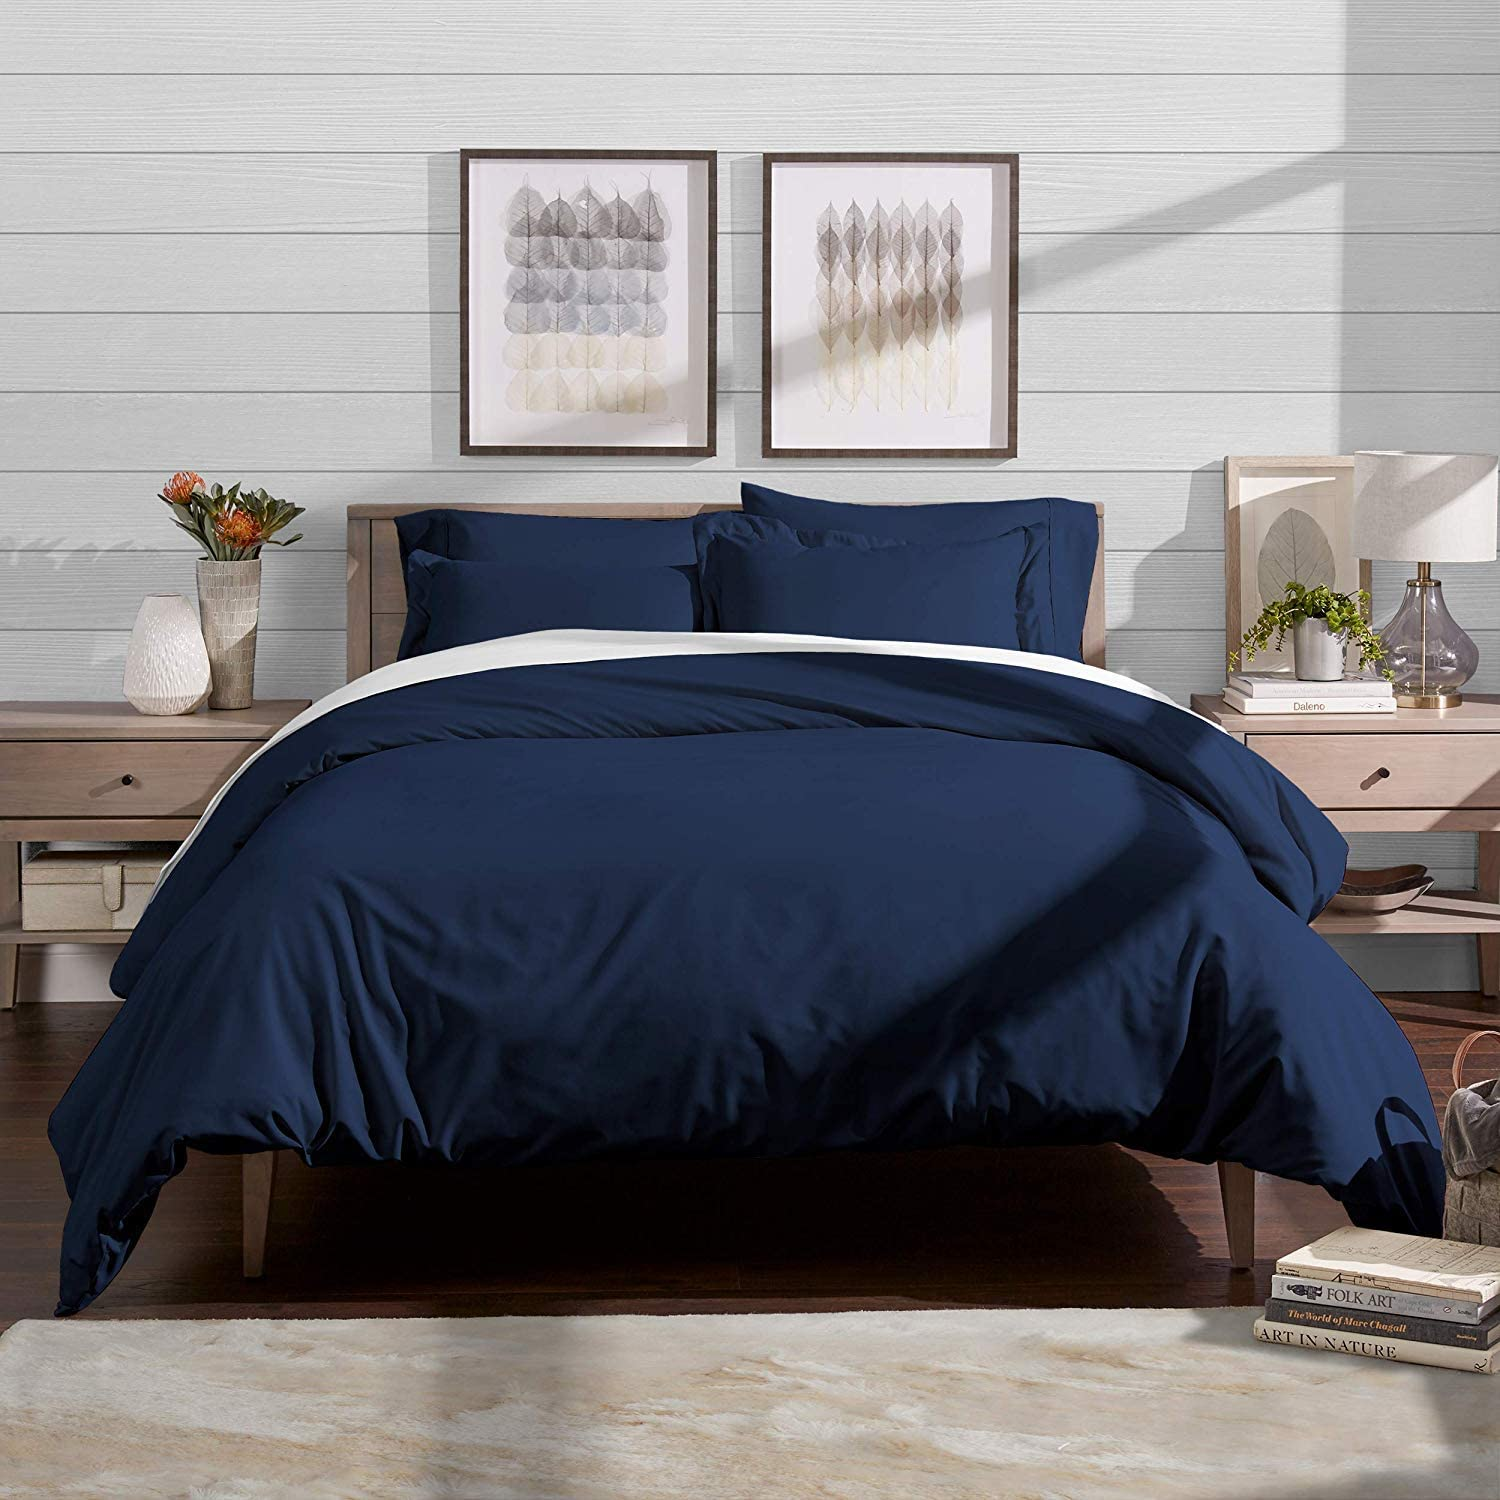 Duvet Cover Set with Zipper Closure 3pc Duvet Cover Set Oversized Super King (120'' x 98'') Size with Corner Ties,100% Egyptian Cotton 1000 Thread Count (Oversized Super King Size Navy bluee)